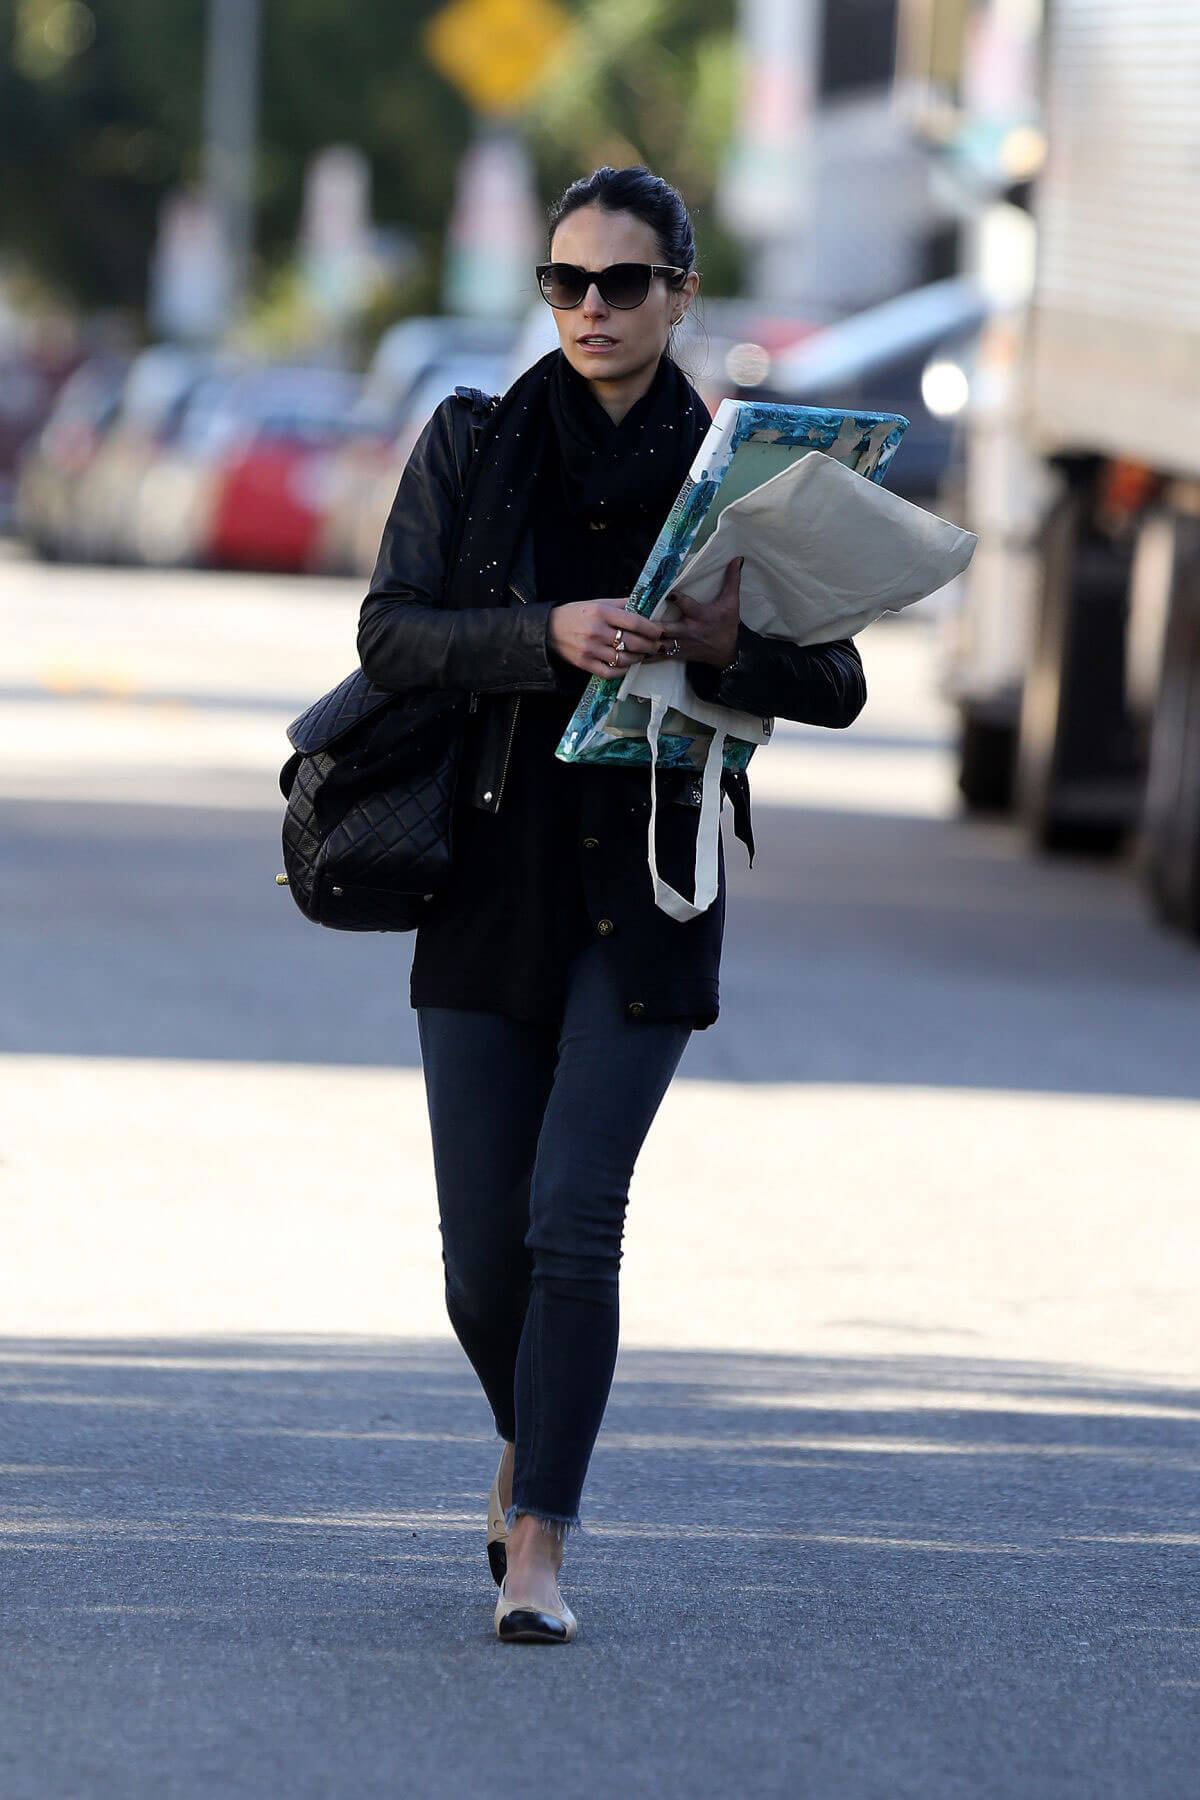 Jordana Brewster Stills Out and About in Hollywood Images